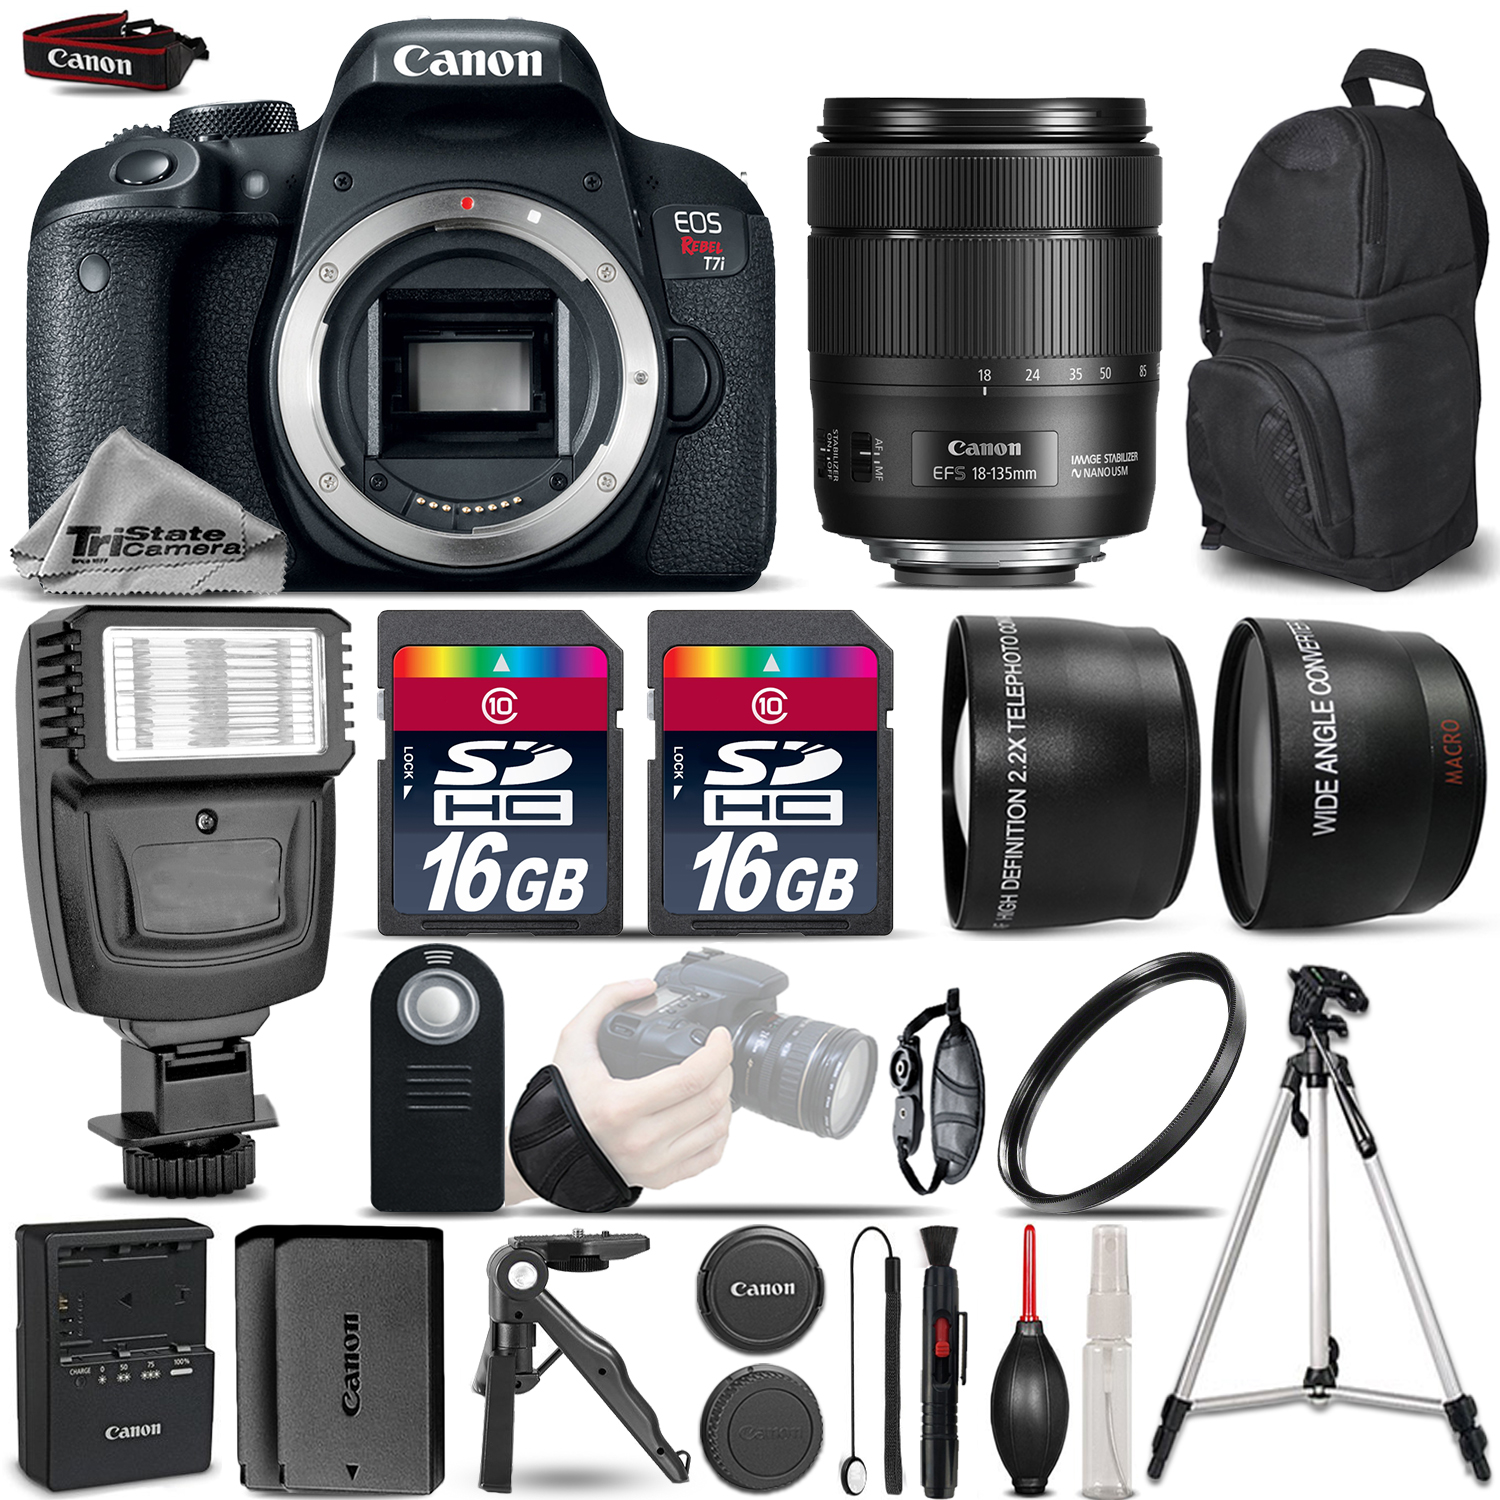 EOS Rebel T7i DSLR Camera + 18-135mm IS USM + Flash + 32GB + Extra Battery *FREE SHIPPING*